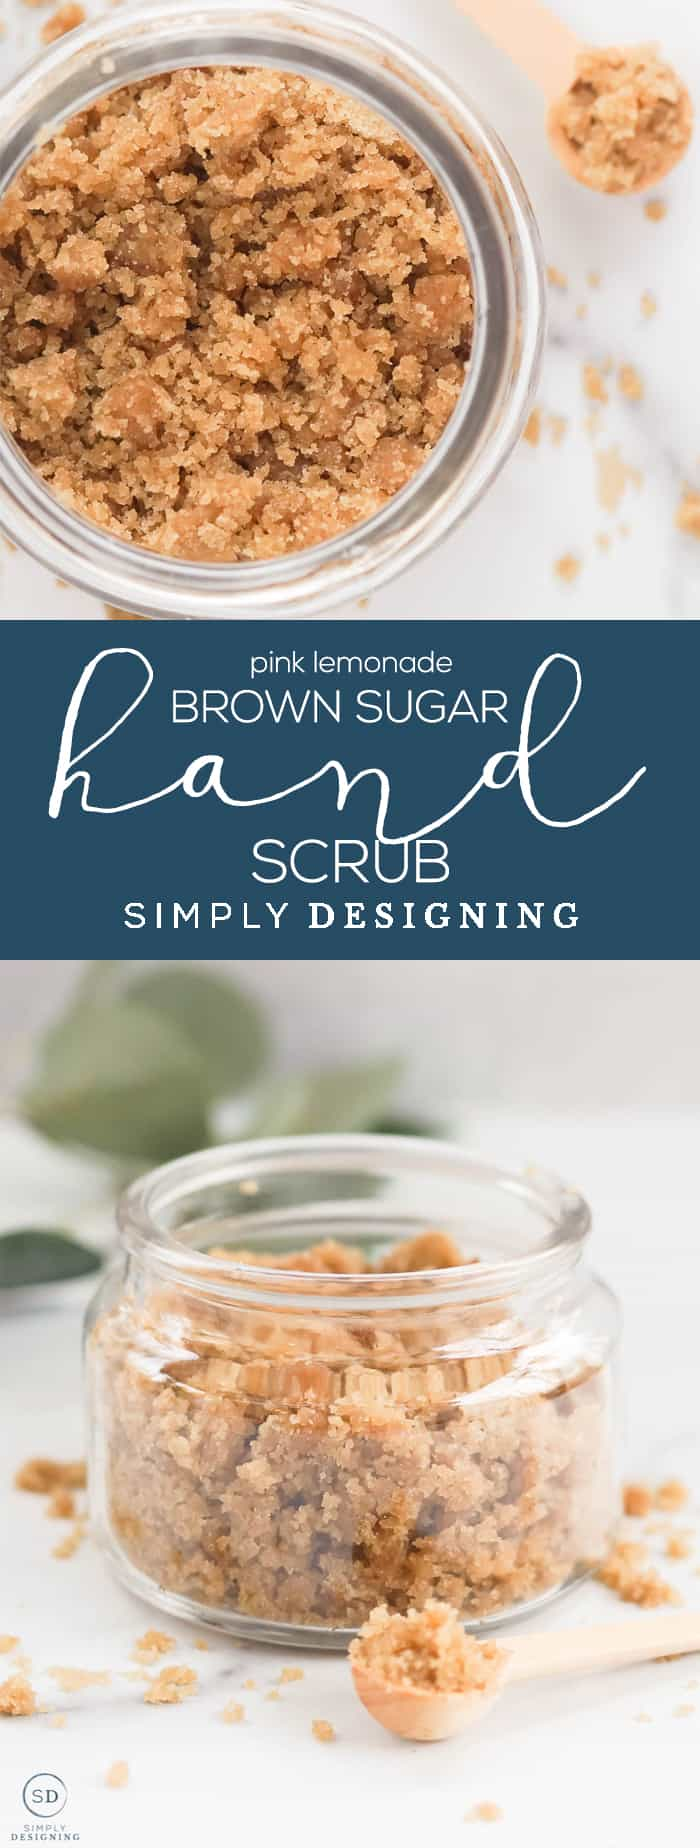 This yummy pink lemonade brown sugar hand scrub recipe is perfect for daily hand exfoliation